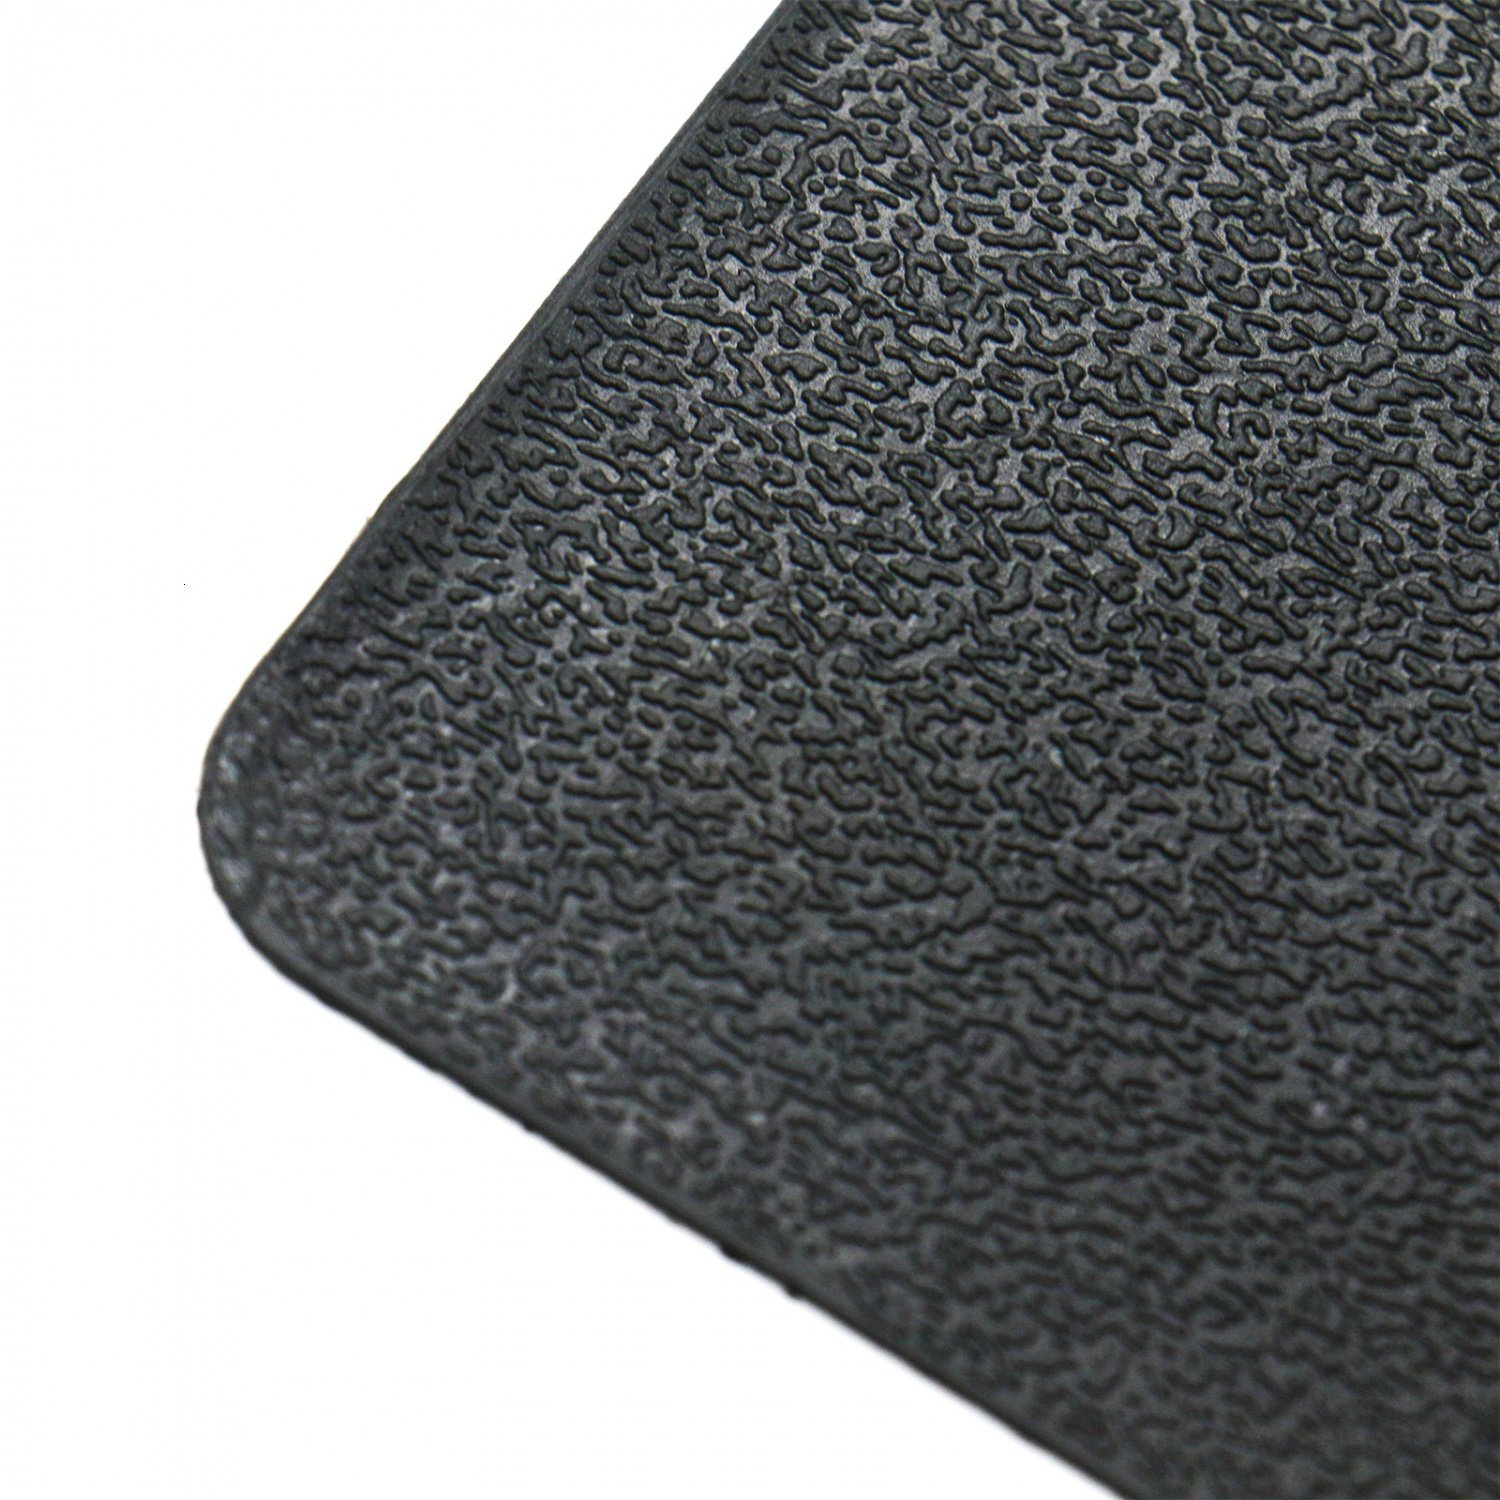 HUELE 2 Pcs Anti-Slip Car Dashboard Mat Mounting Pad for Cell Phones Sunglasses Black 10.6 x 5.9